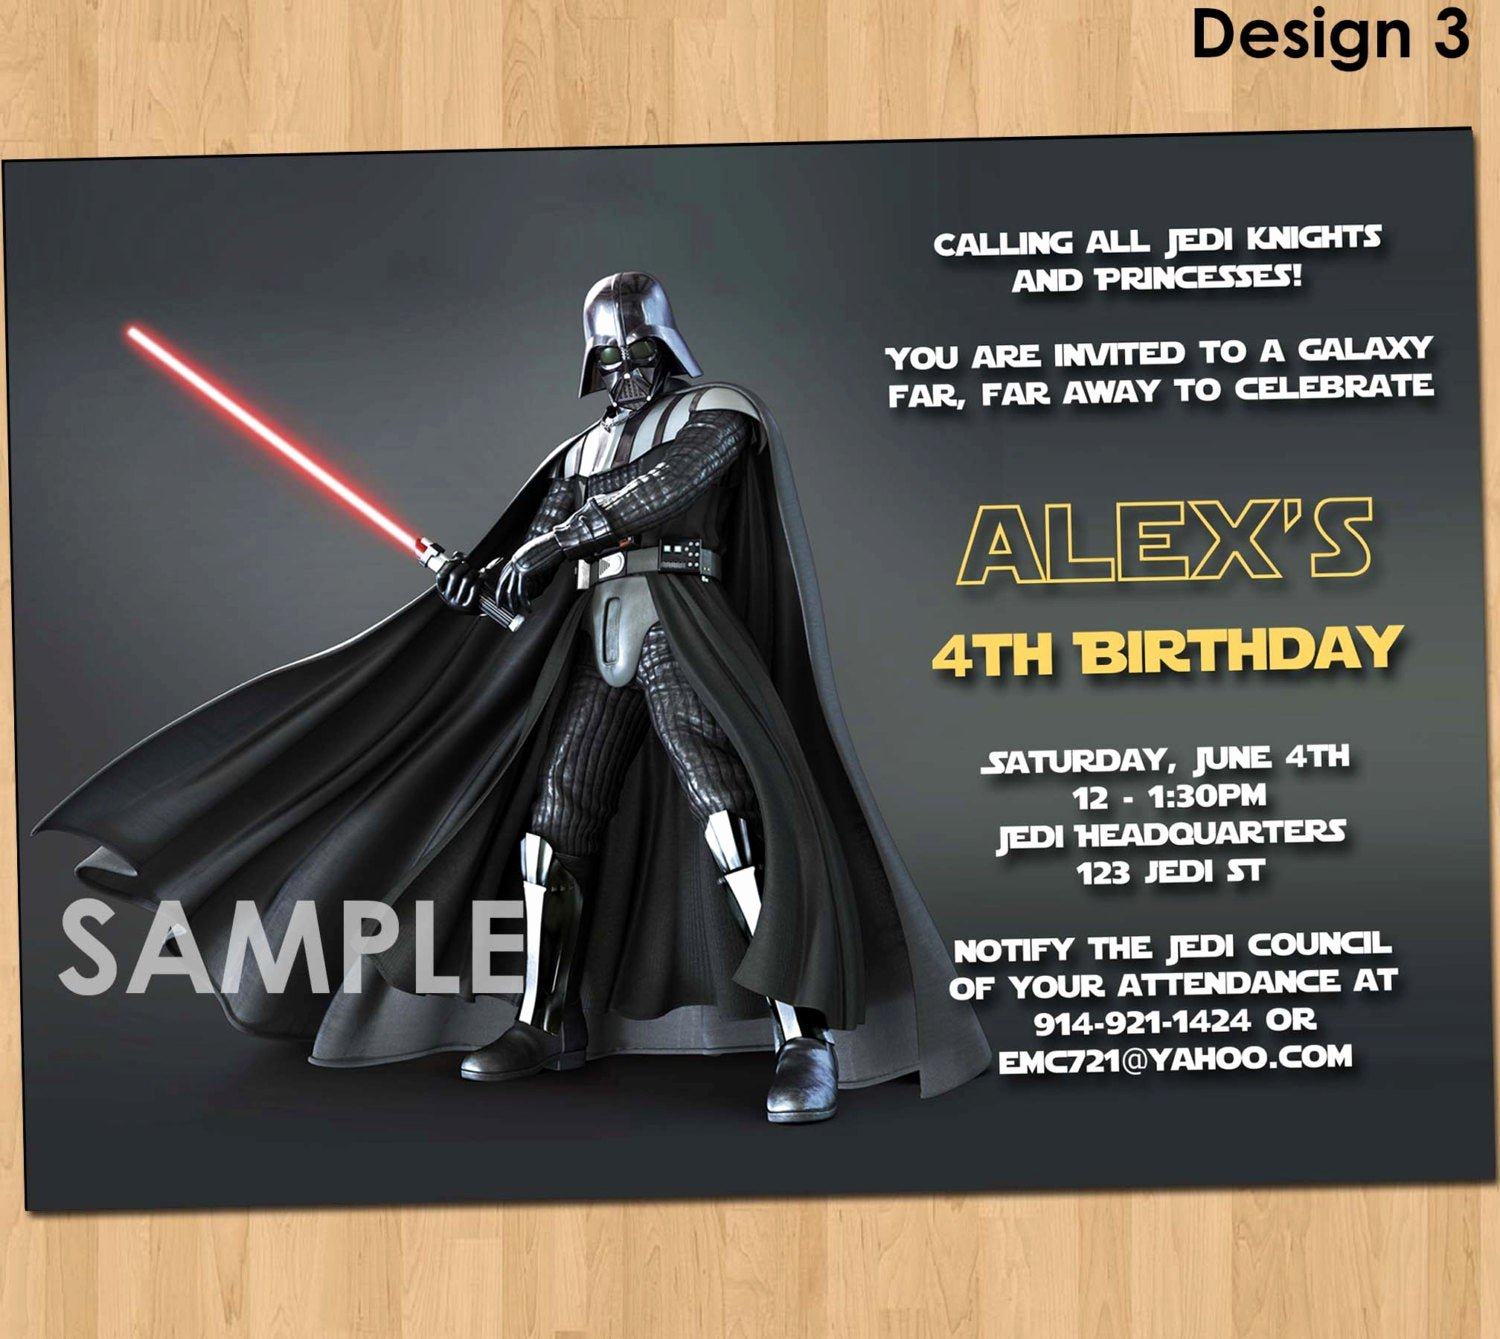 Free Star Wars Invitations Inspirational Star Wars Invitation Star Wars Party Invitation Star Wars